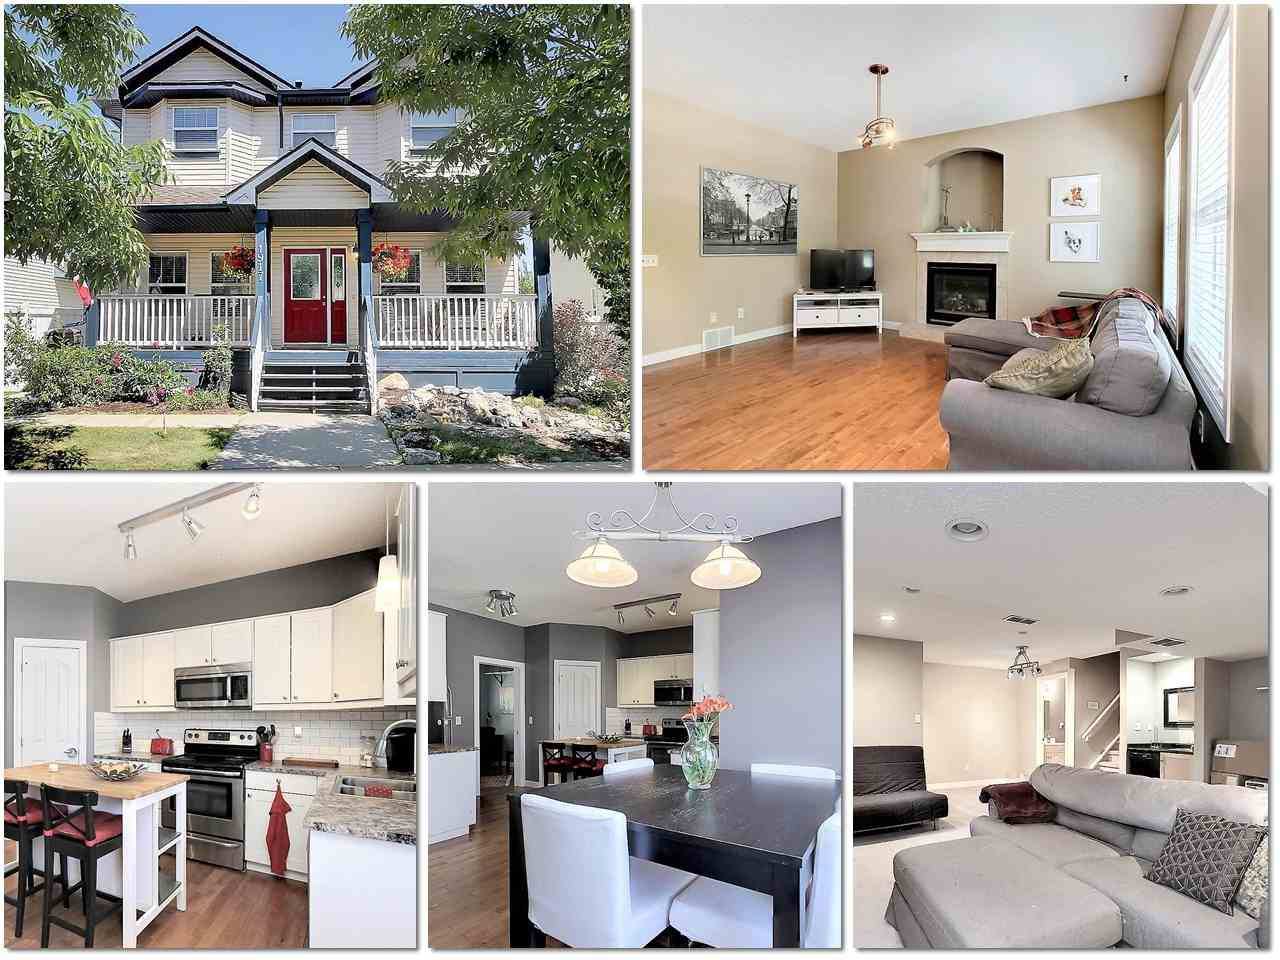 Main Photo: 1917 Tanner Wynd NW in Edmonton: Zone 14 House for sale : MLS®# E4131967